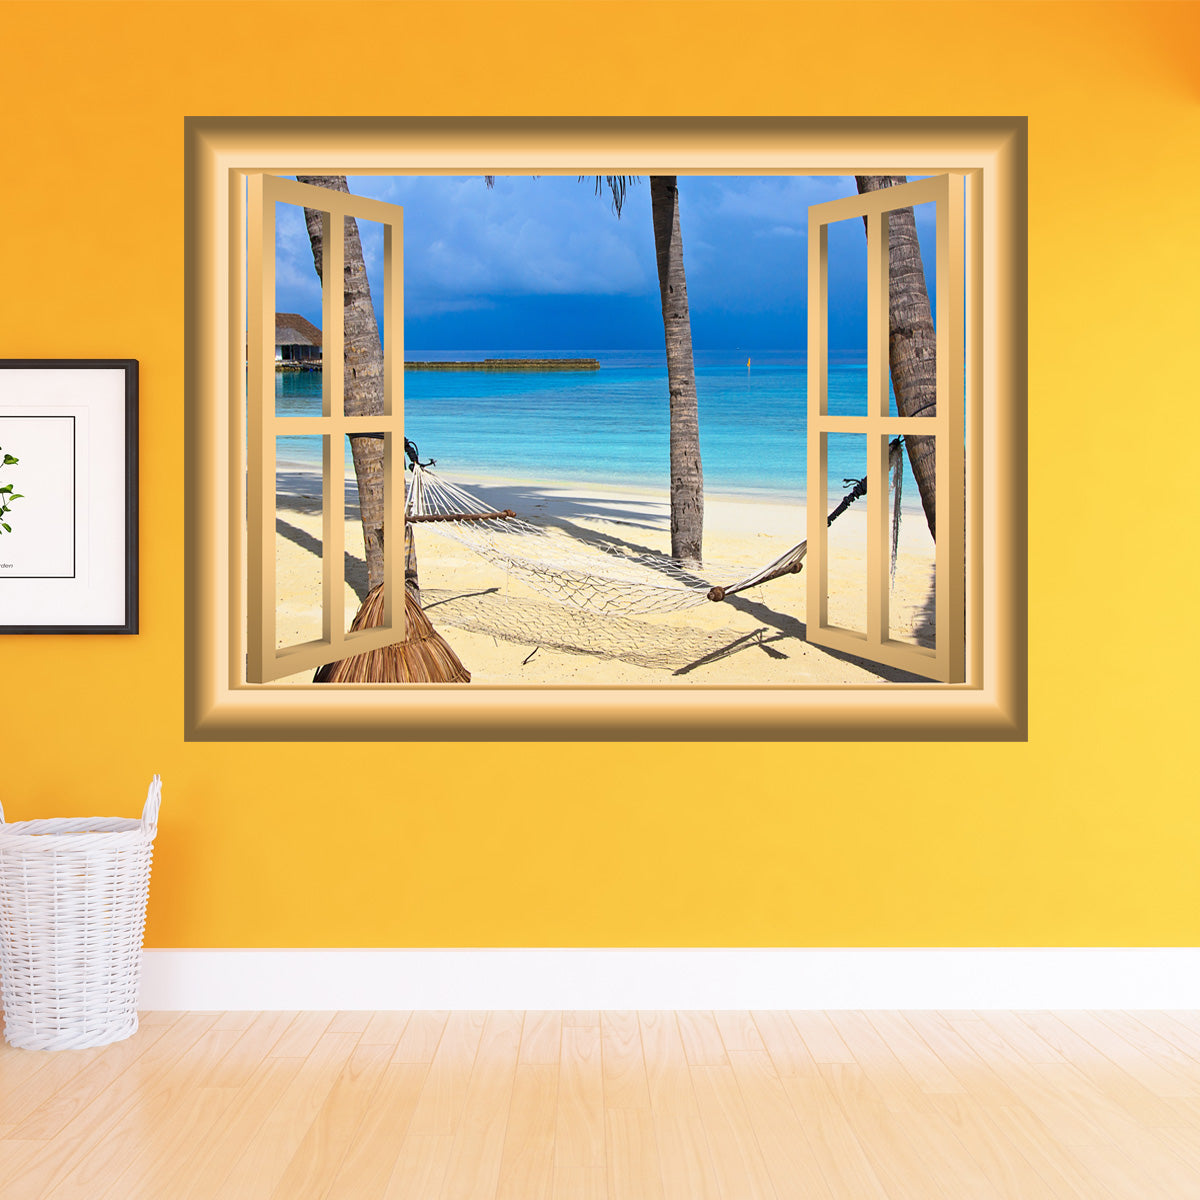 3D Window Frame Peel and Stick Mural Wall Art Beach Scene Wall Decal Removable